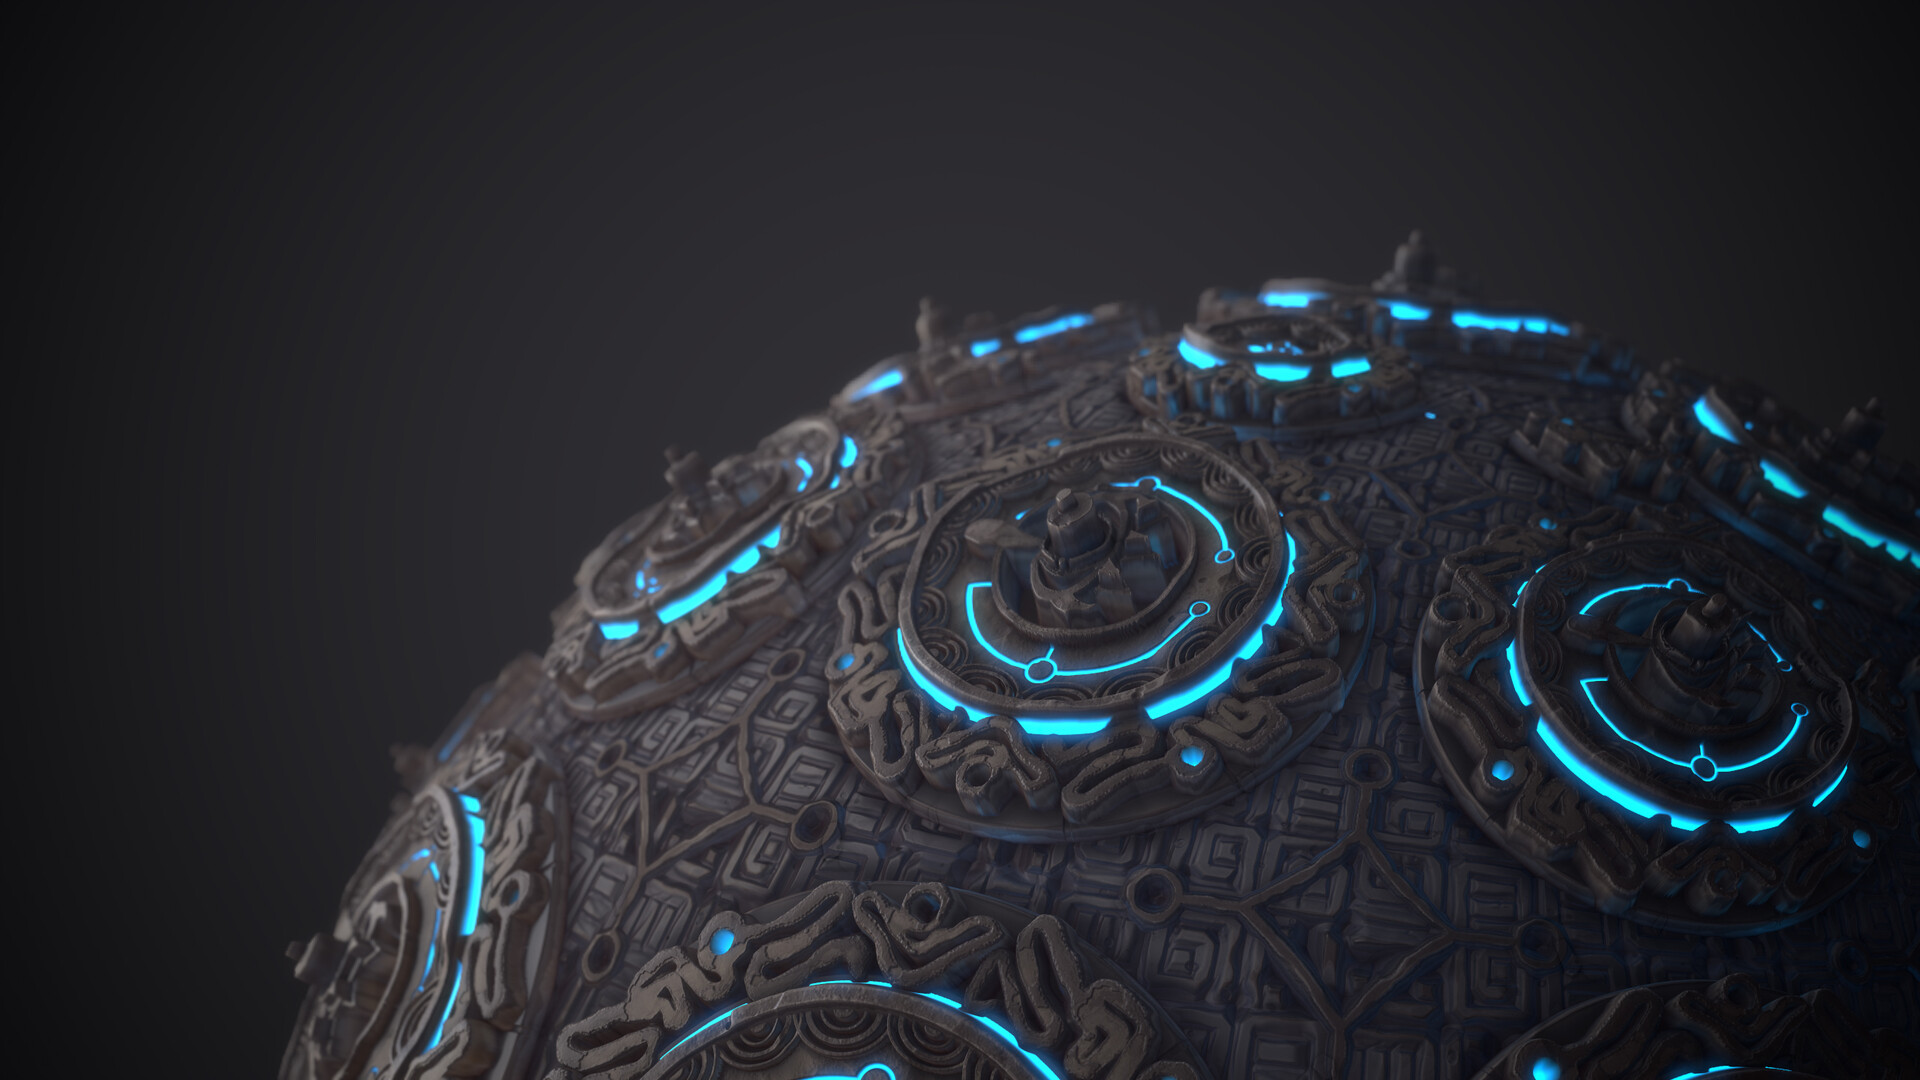 Sheikah Eye Wallpaper Posted By Sarah Sellers